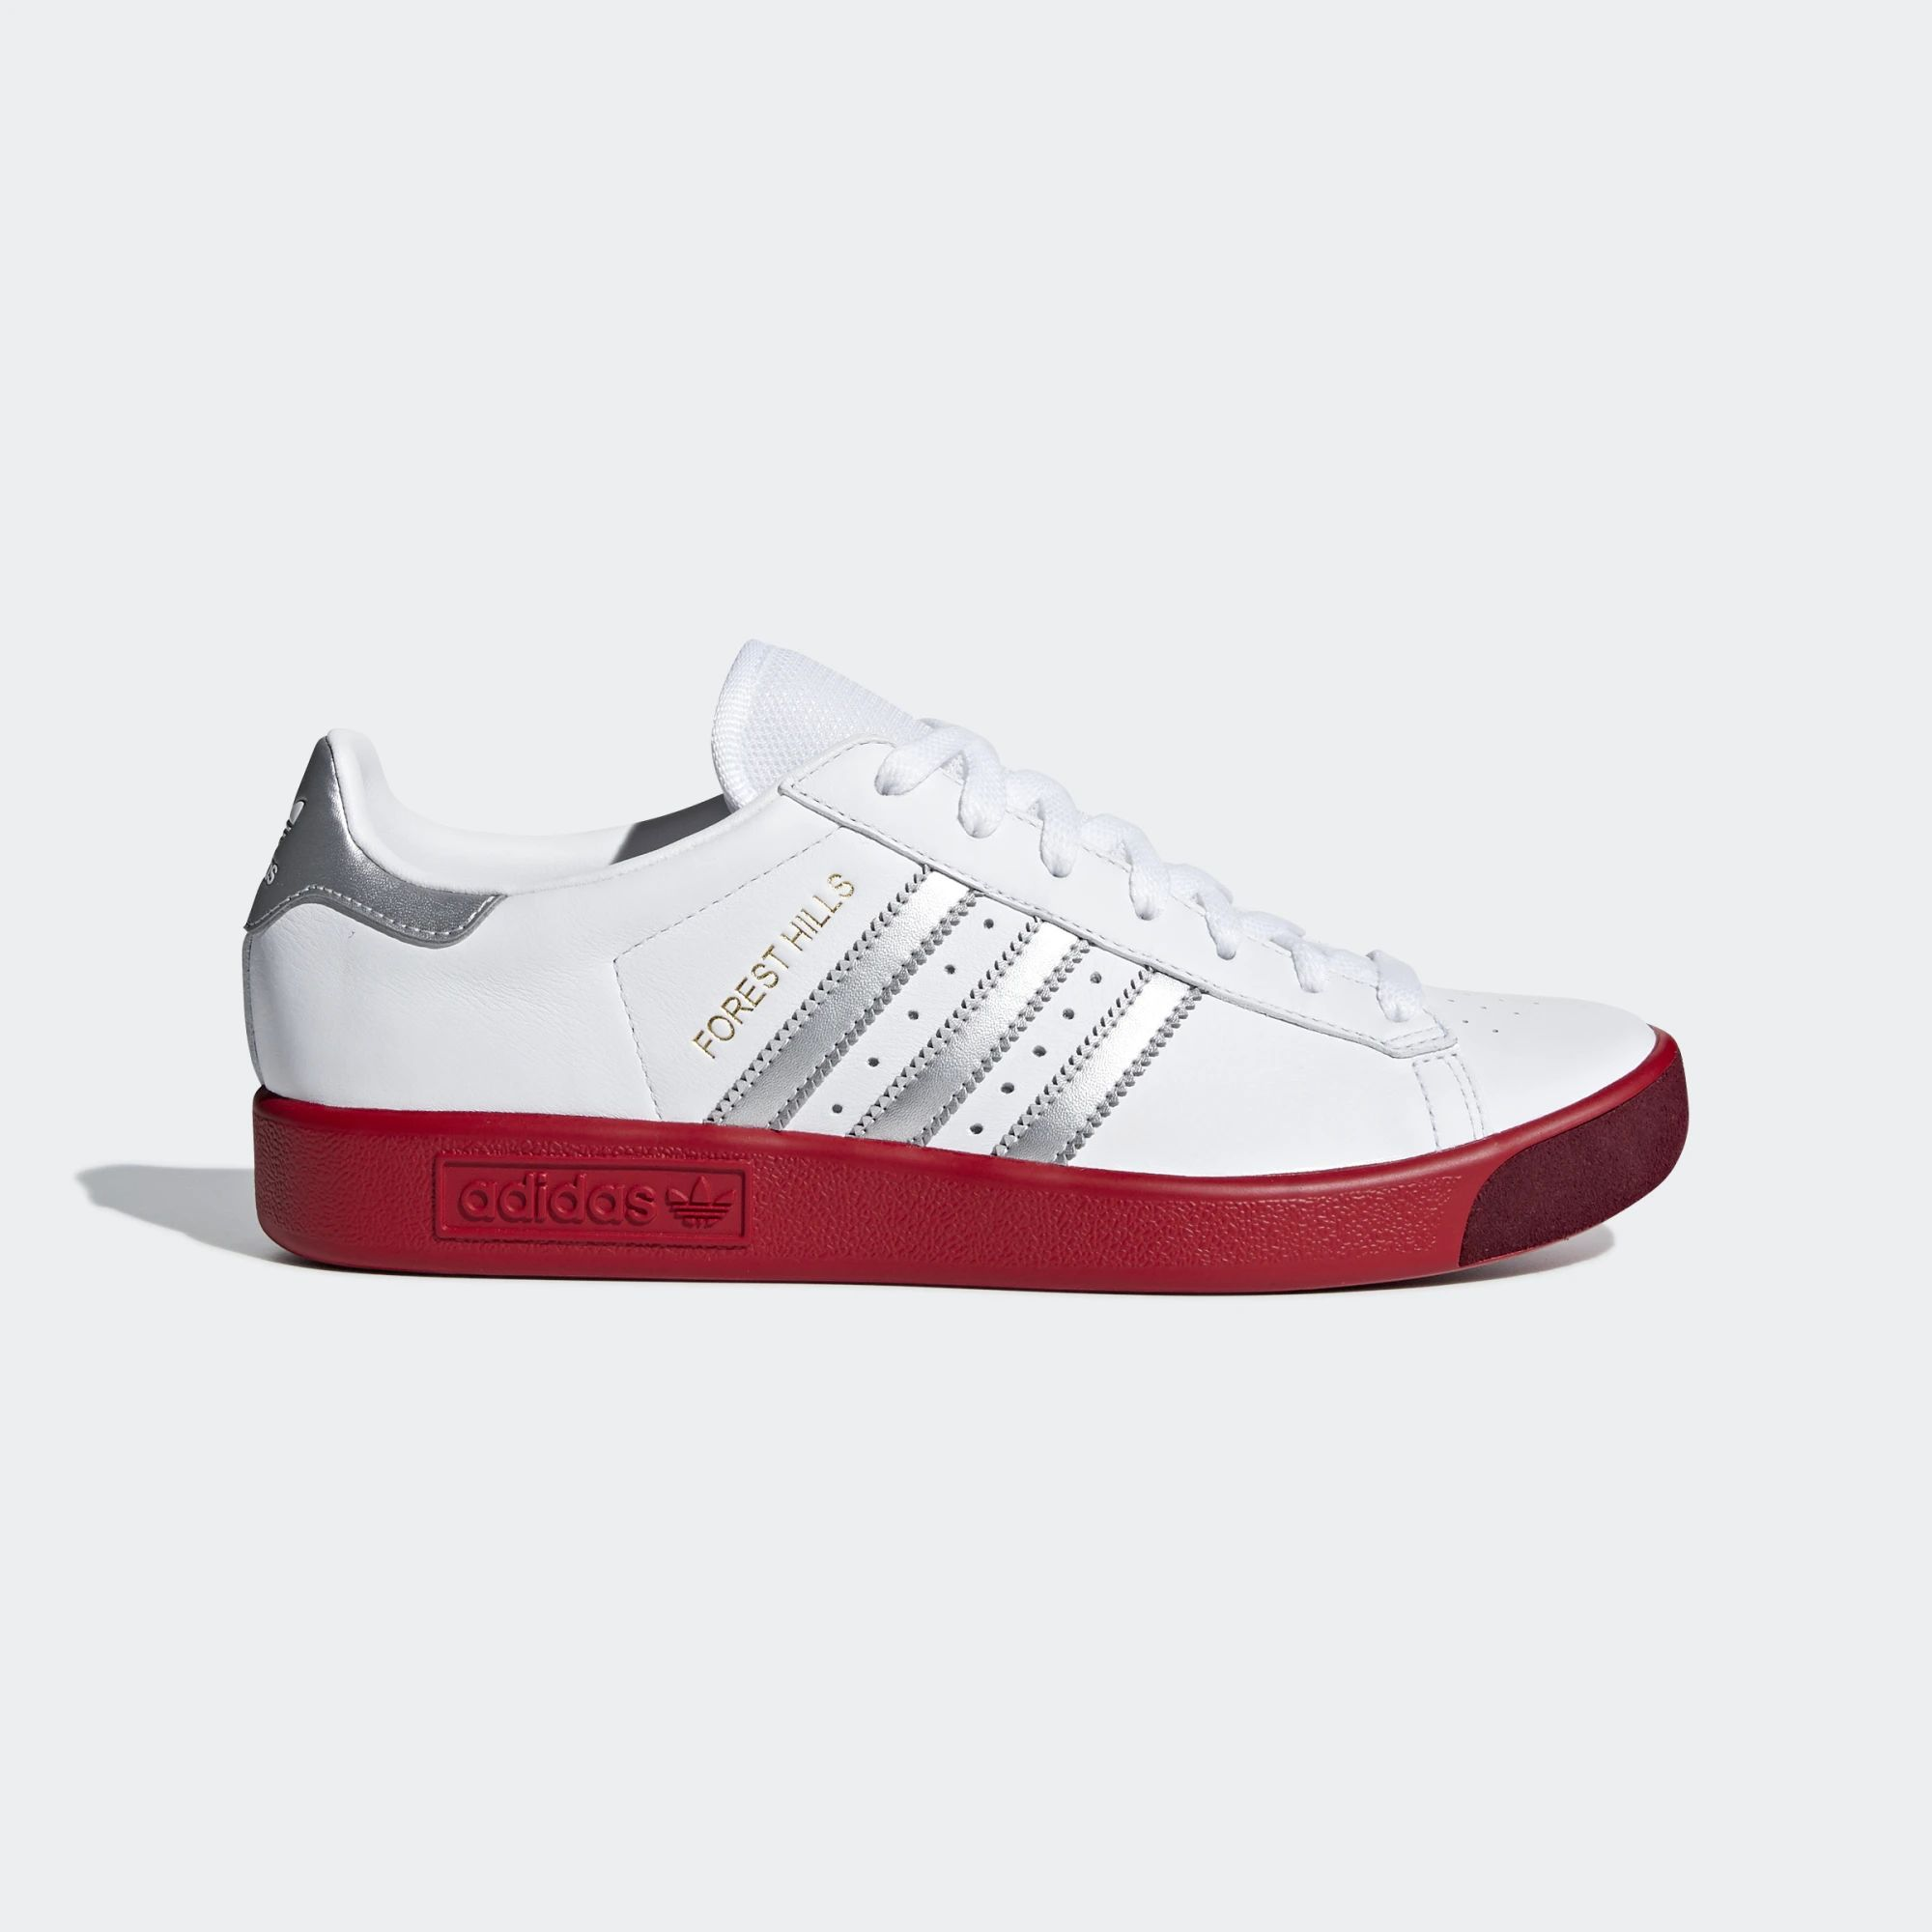 Adidas Forest Hills Shoes - Ftwr White / Silver Met / Scarlet